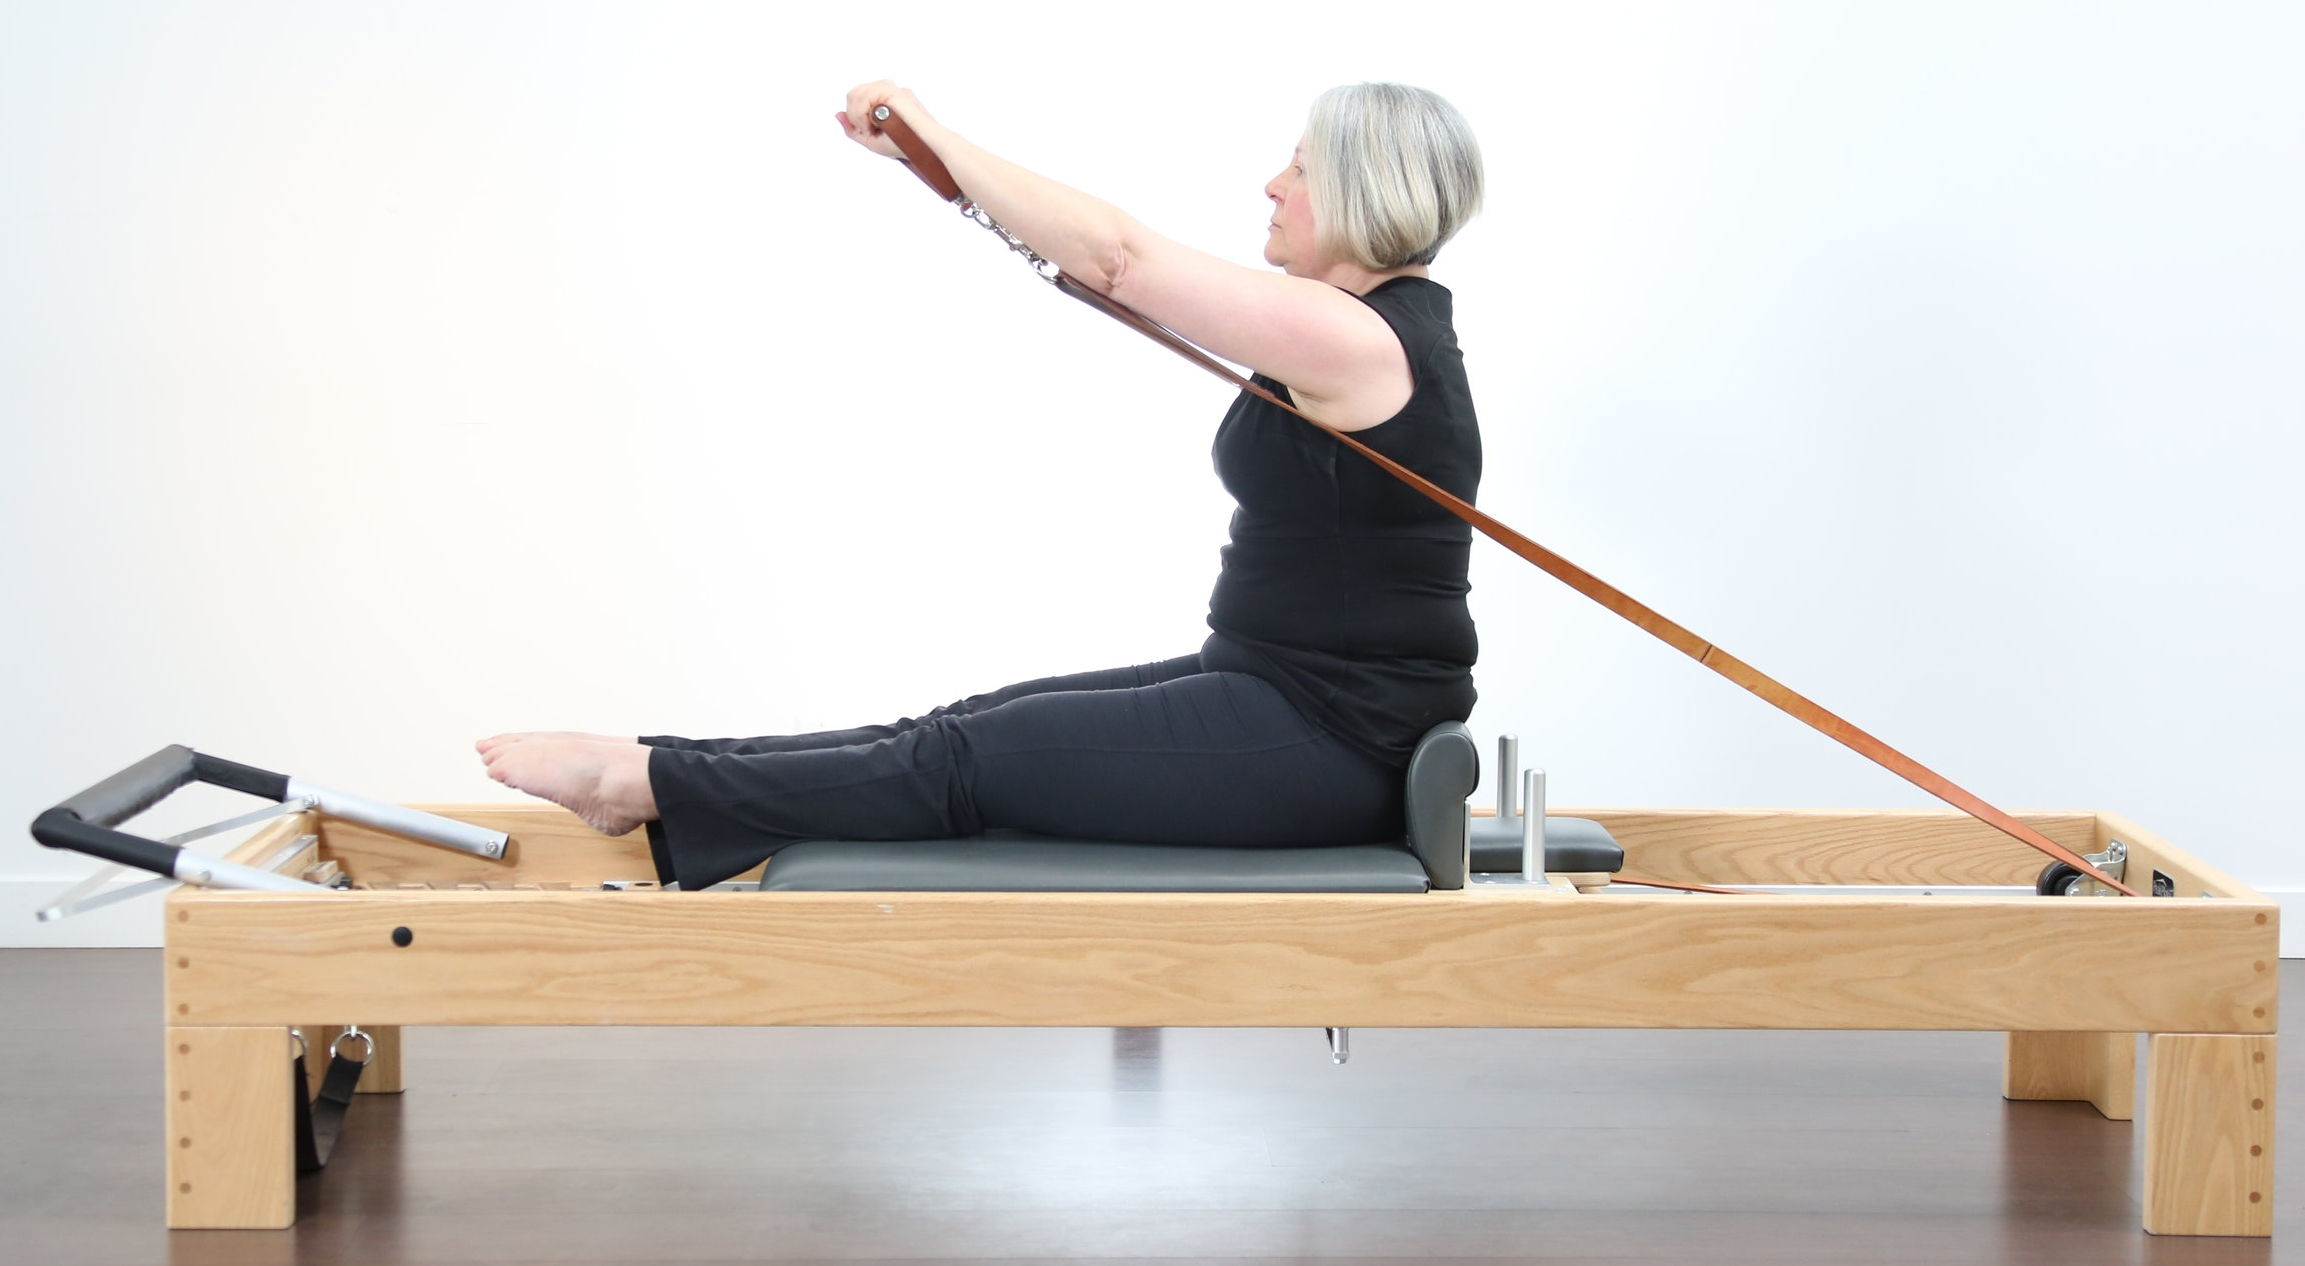 The Reformer is so versatile. You can sit, lie down, put your hands or feet in the straps and even stand on the carriage!